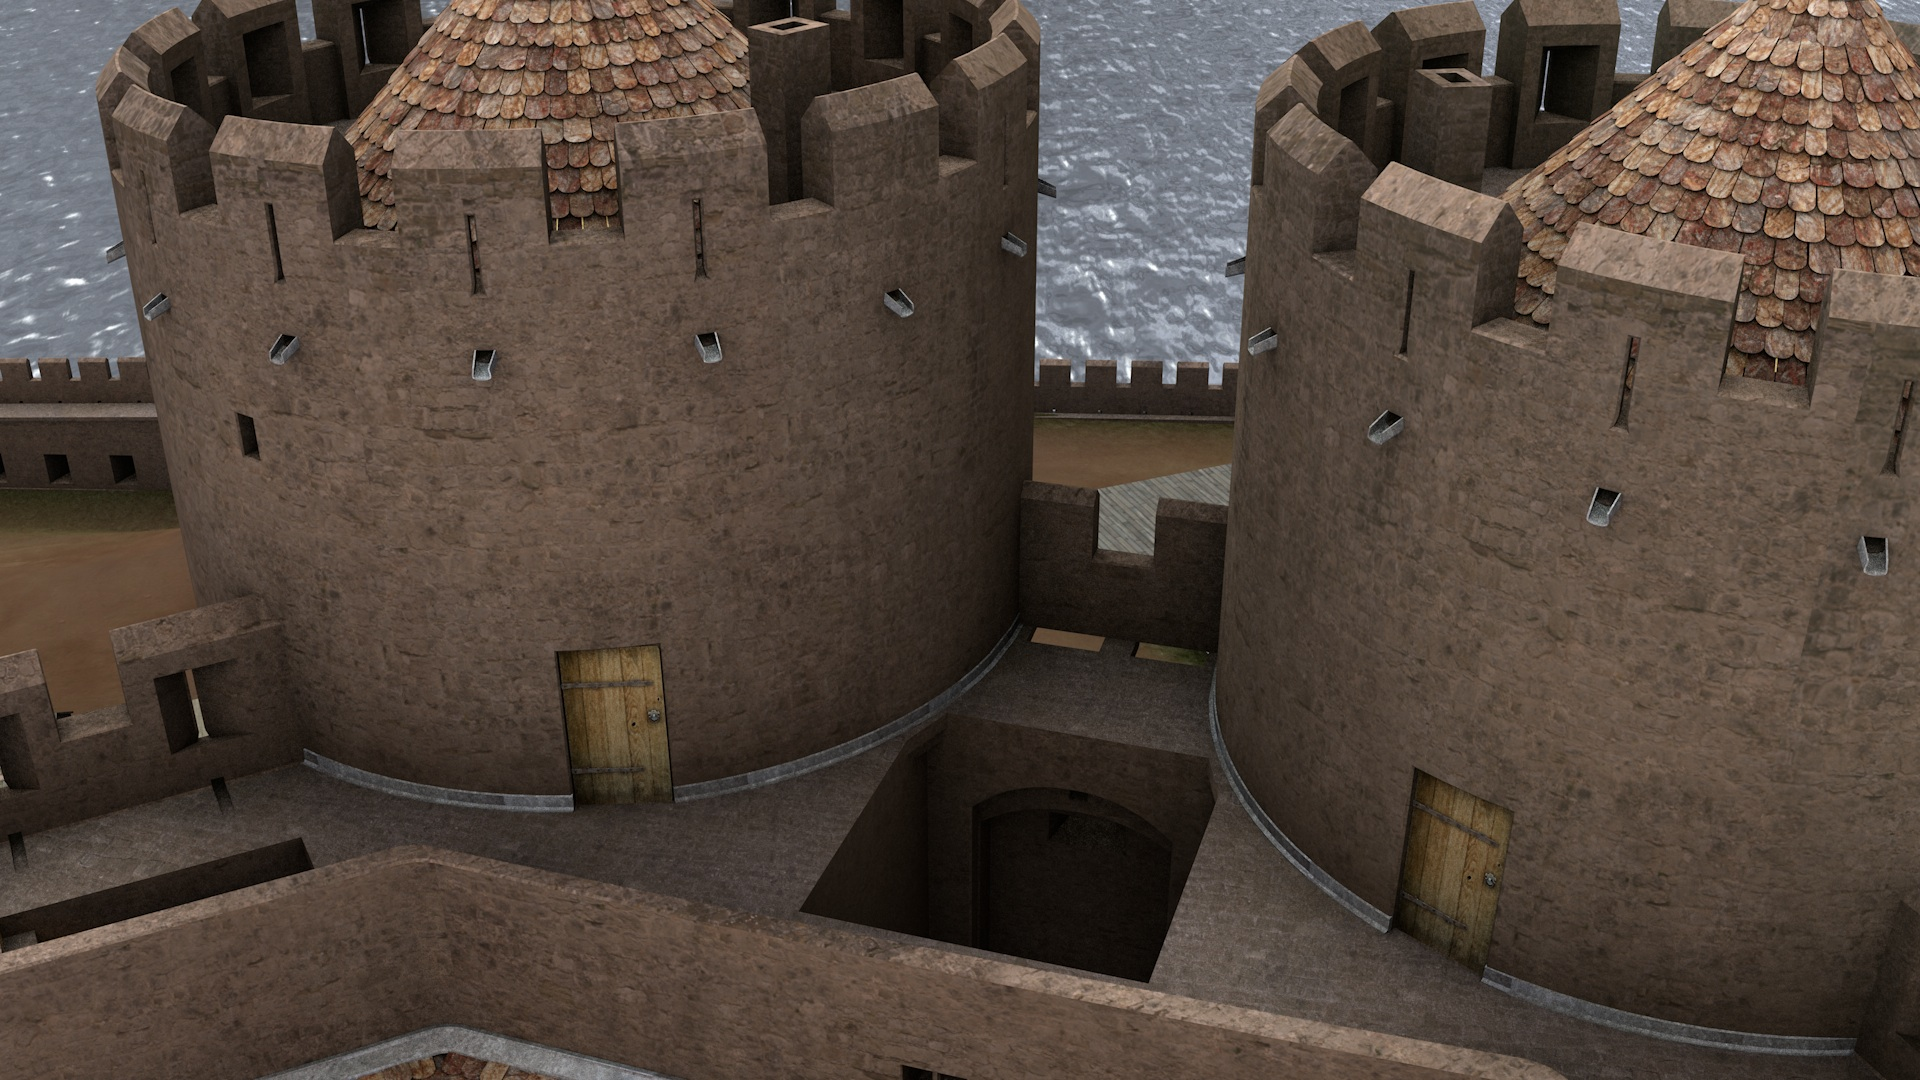 Testing out weathered door textures for the Inner Ward of Rhuddlan Castle